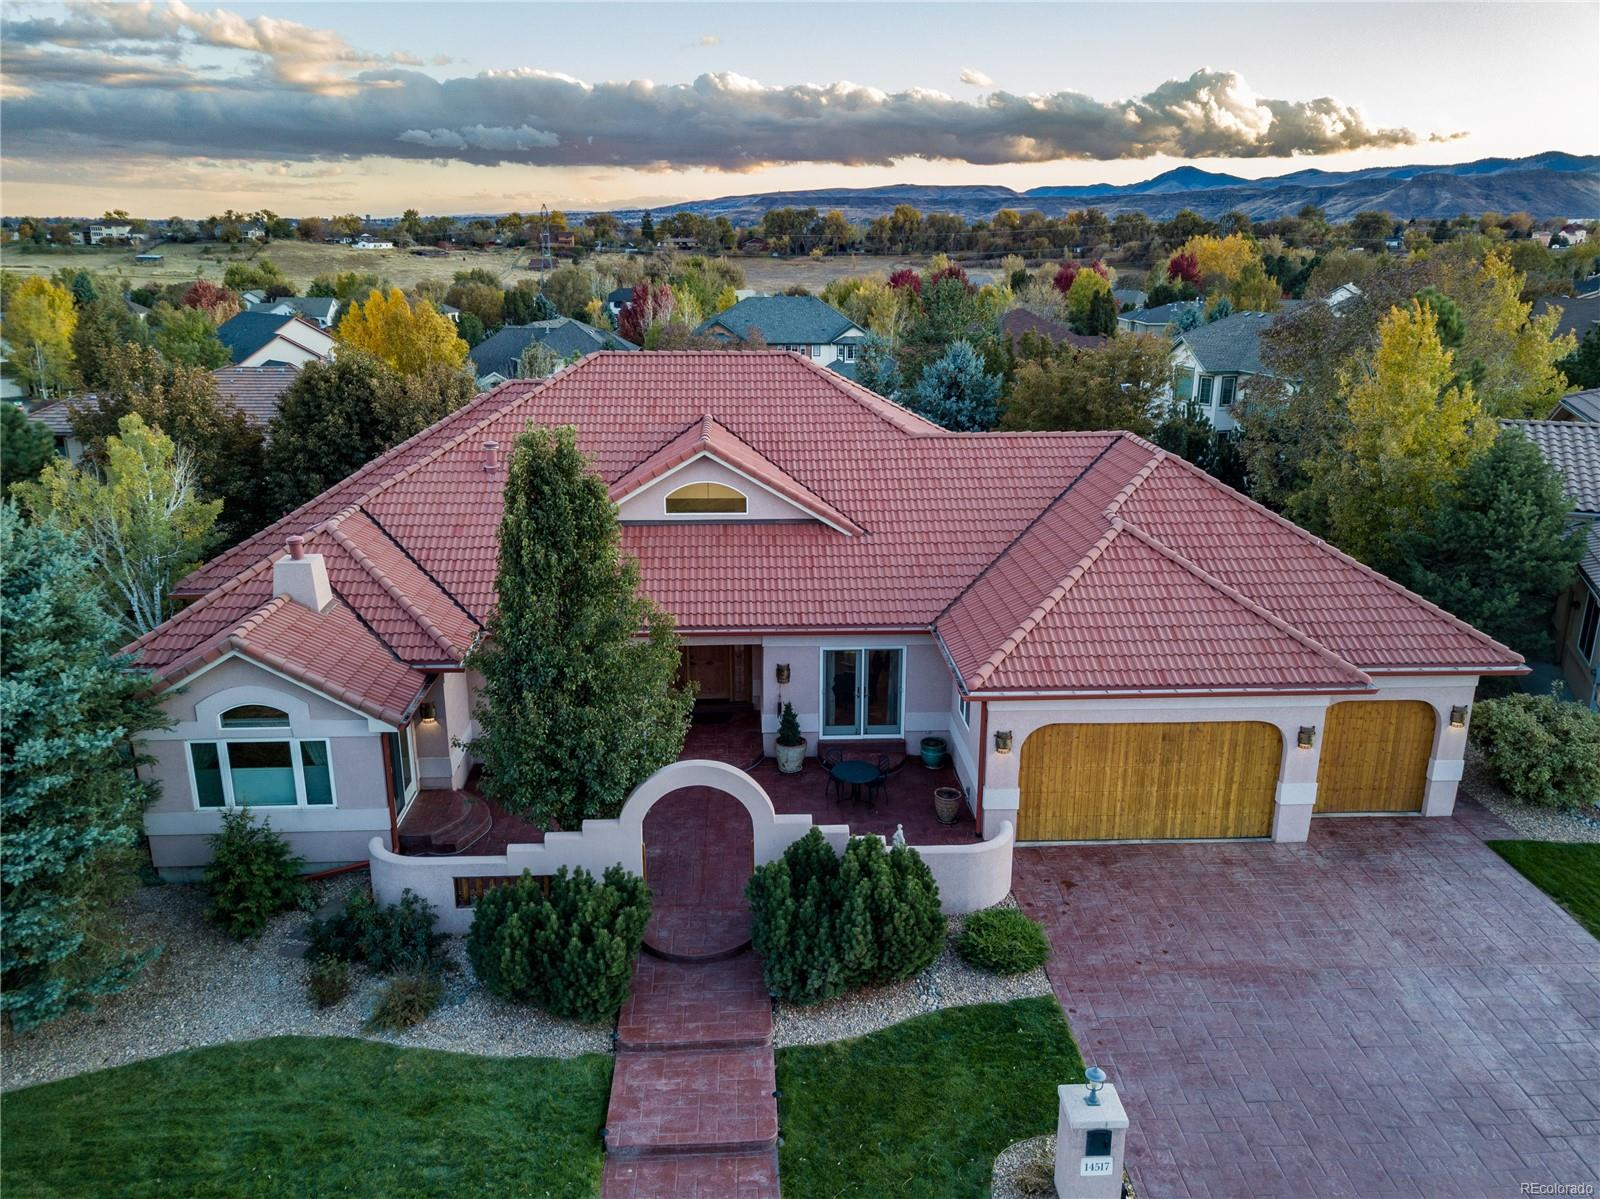 14517 W 57th Place, Arvada, CO 80002 - Arvada, CO real estate listing